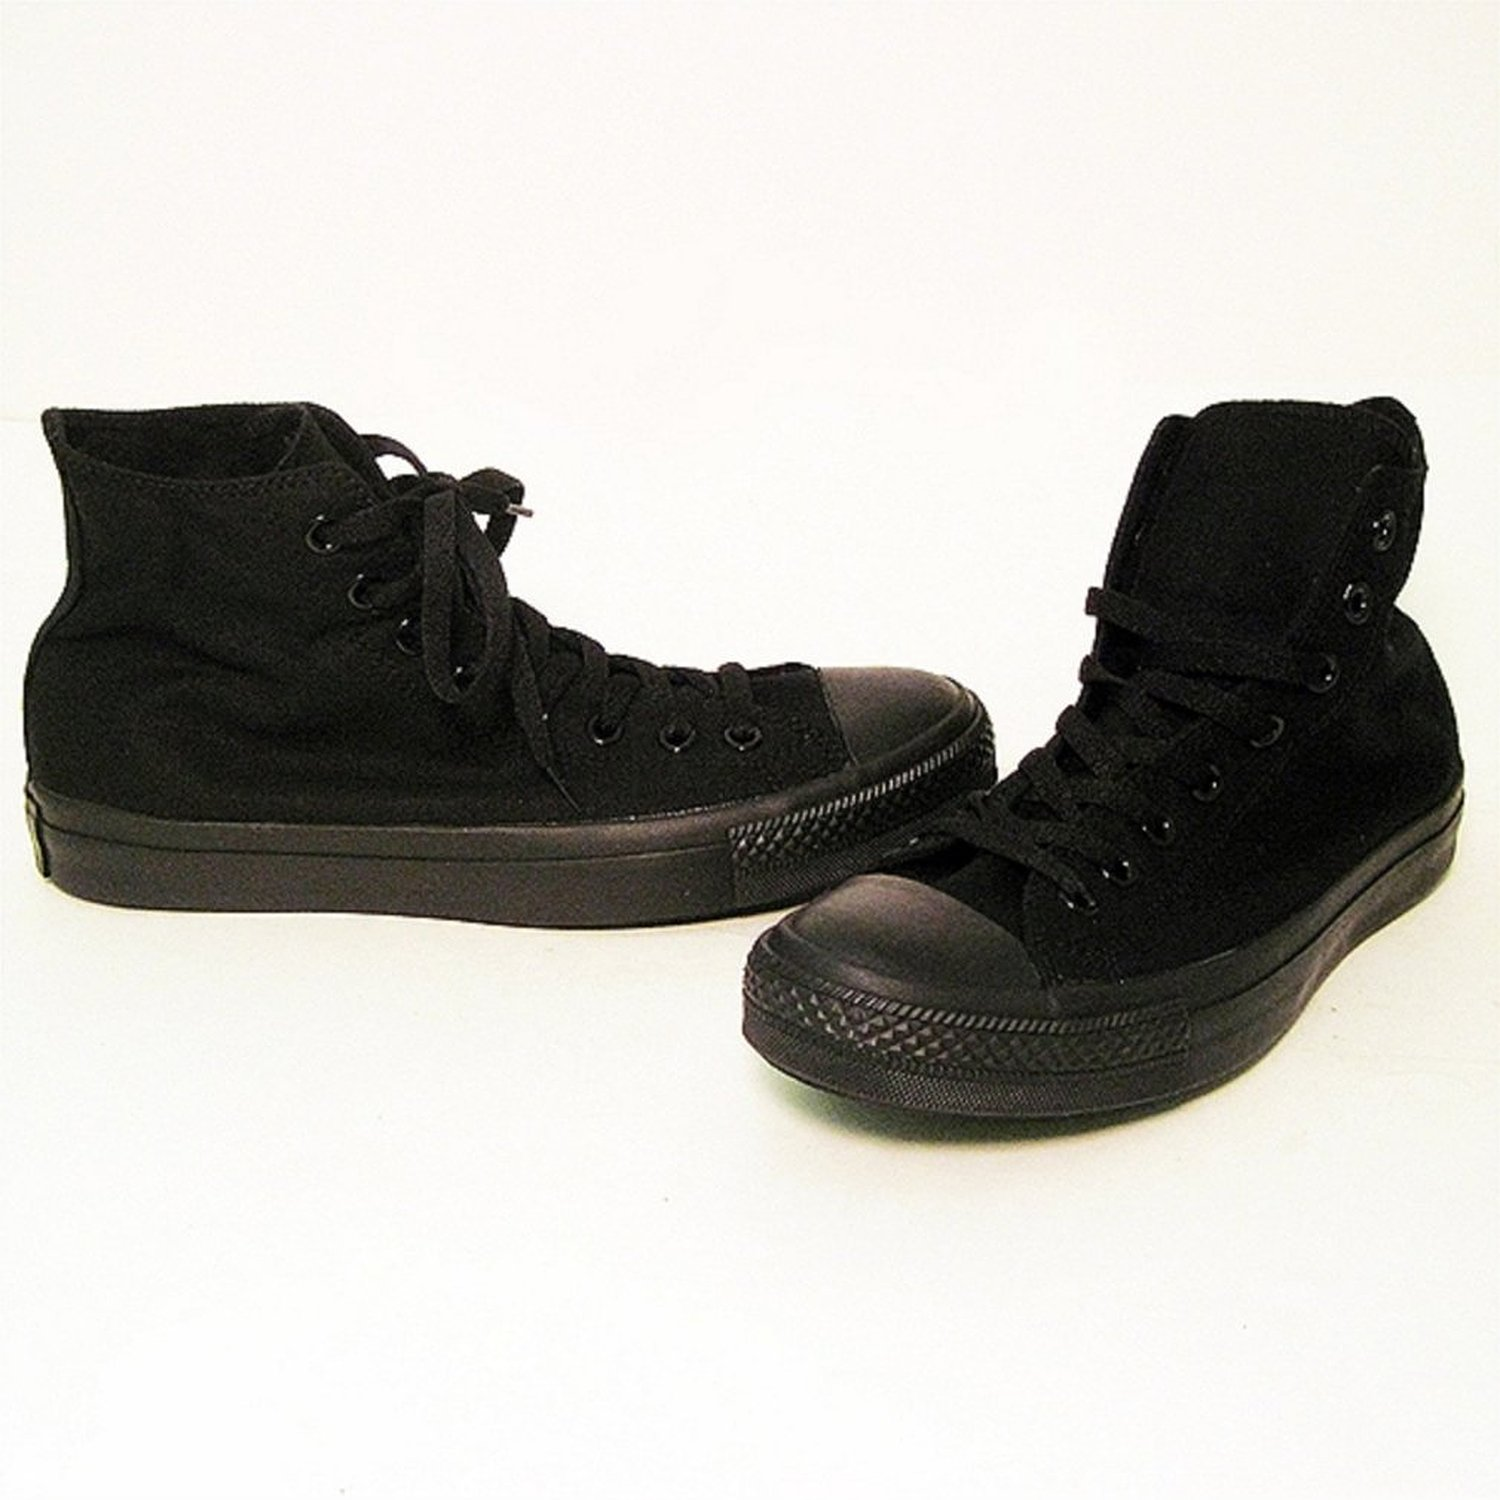 Converse black all star high top sneakers for for Converse all star amazon